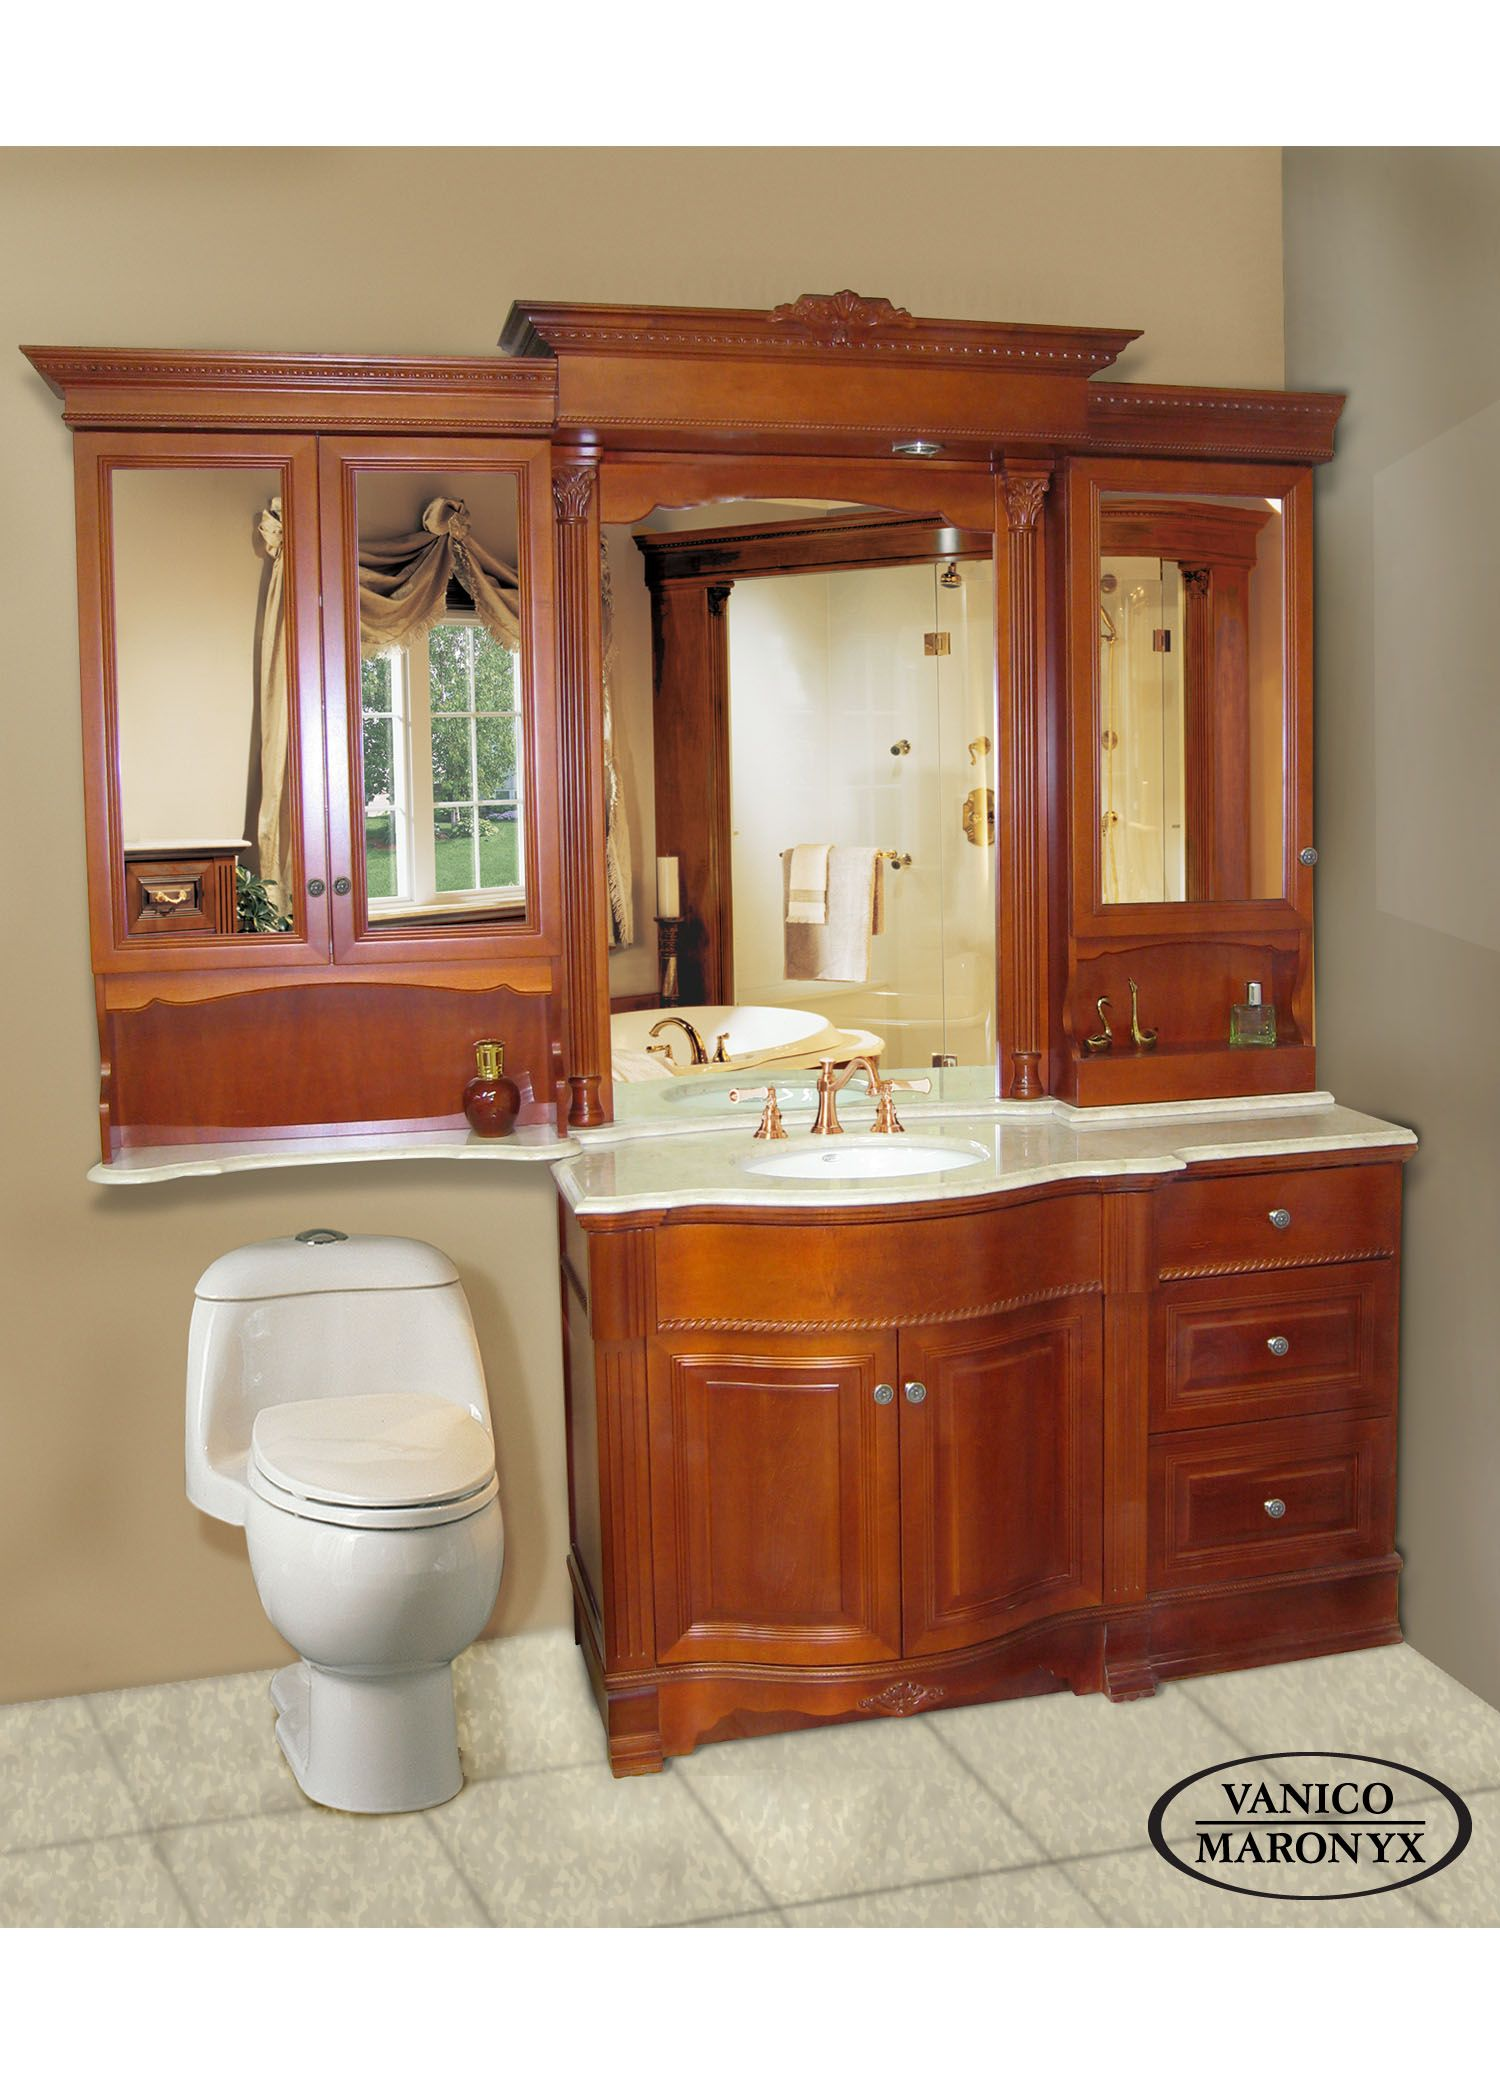 Vanico Maronyx S Beautiful Bath Vanity With Maple Wood Chateau